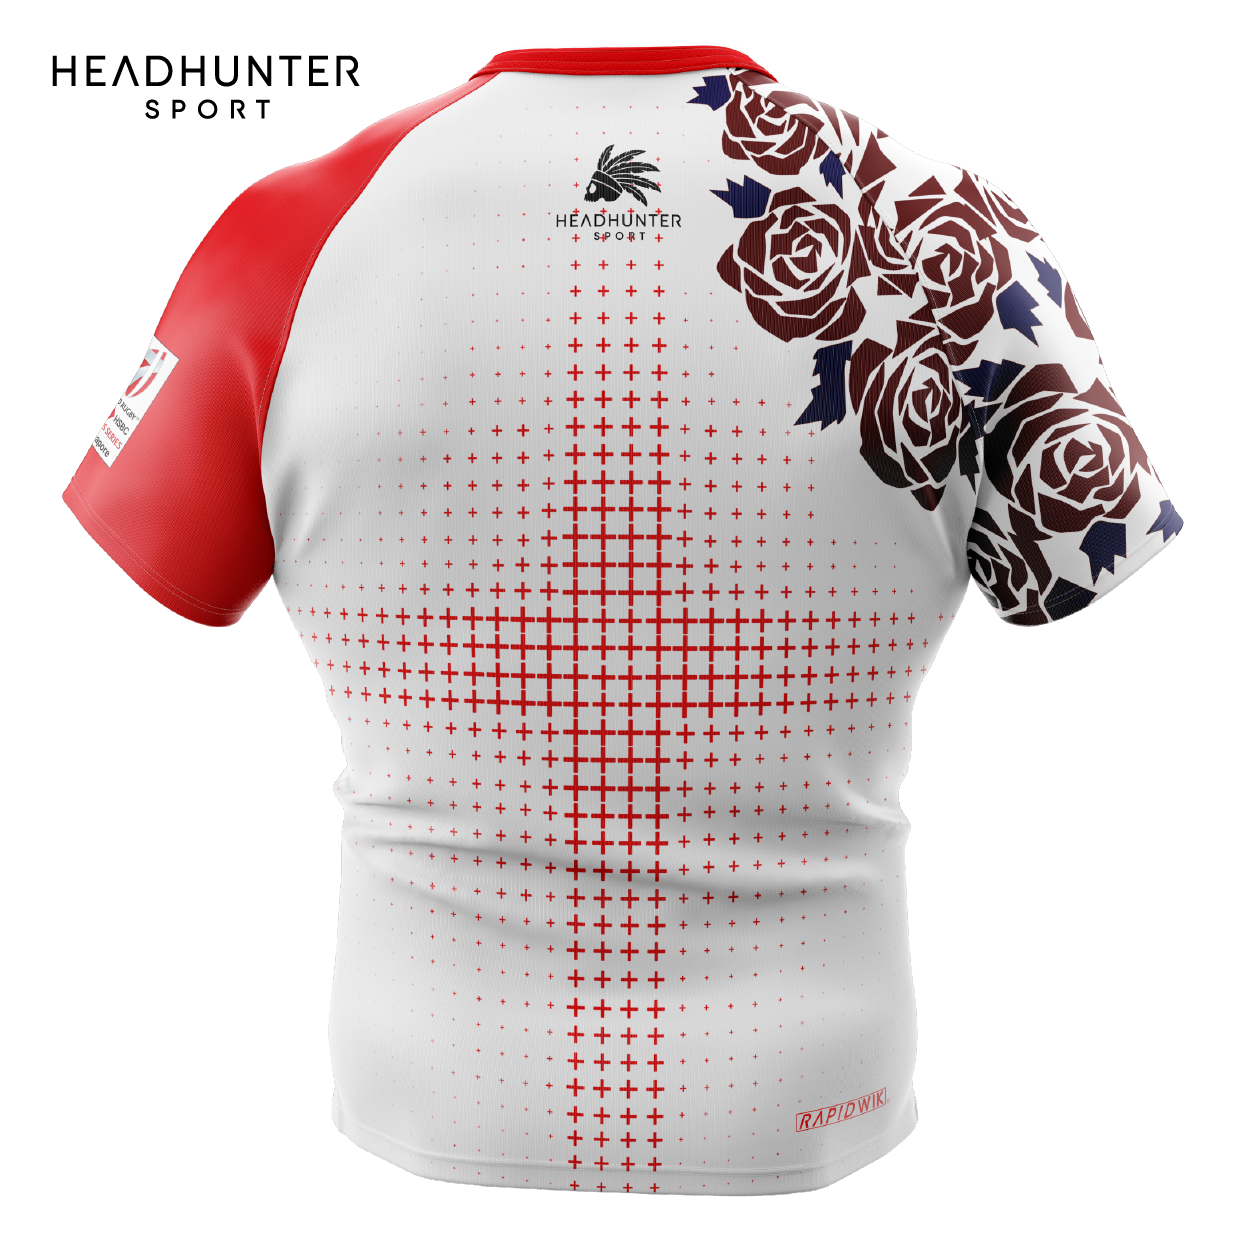 HSBC RUGBY 7S SERIES SINGAPORE 2019 MERCHANDISE ENGLAND JERSEY